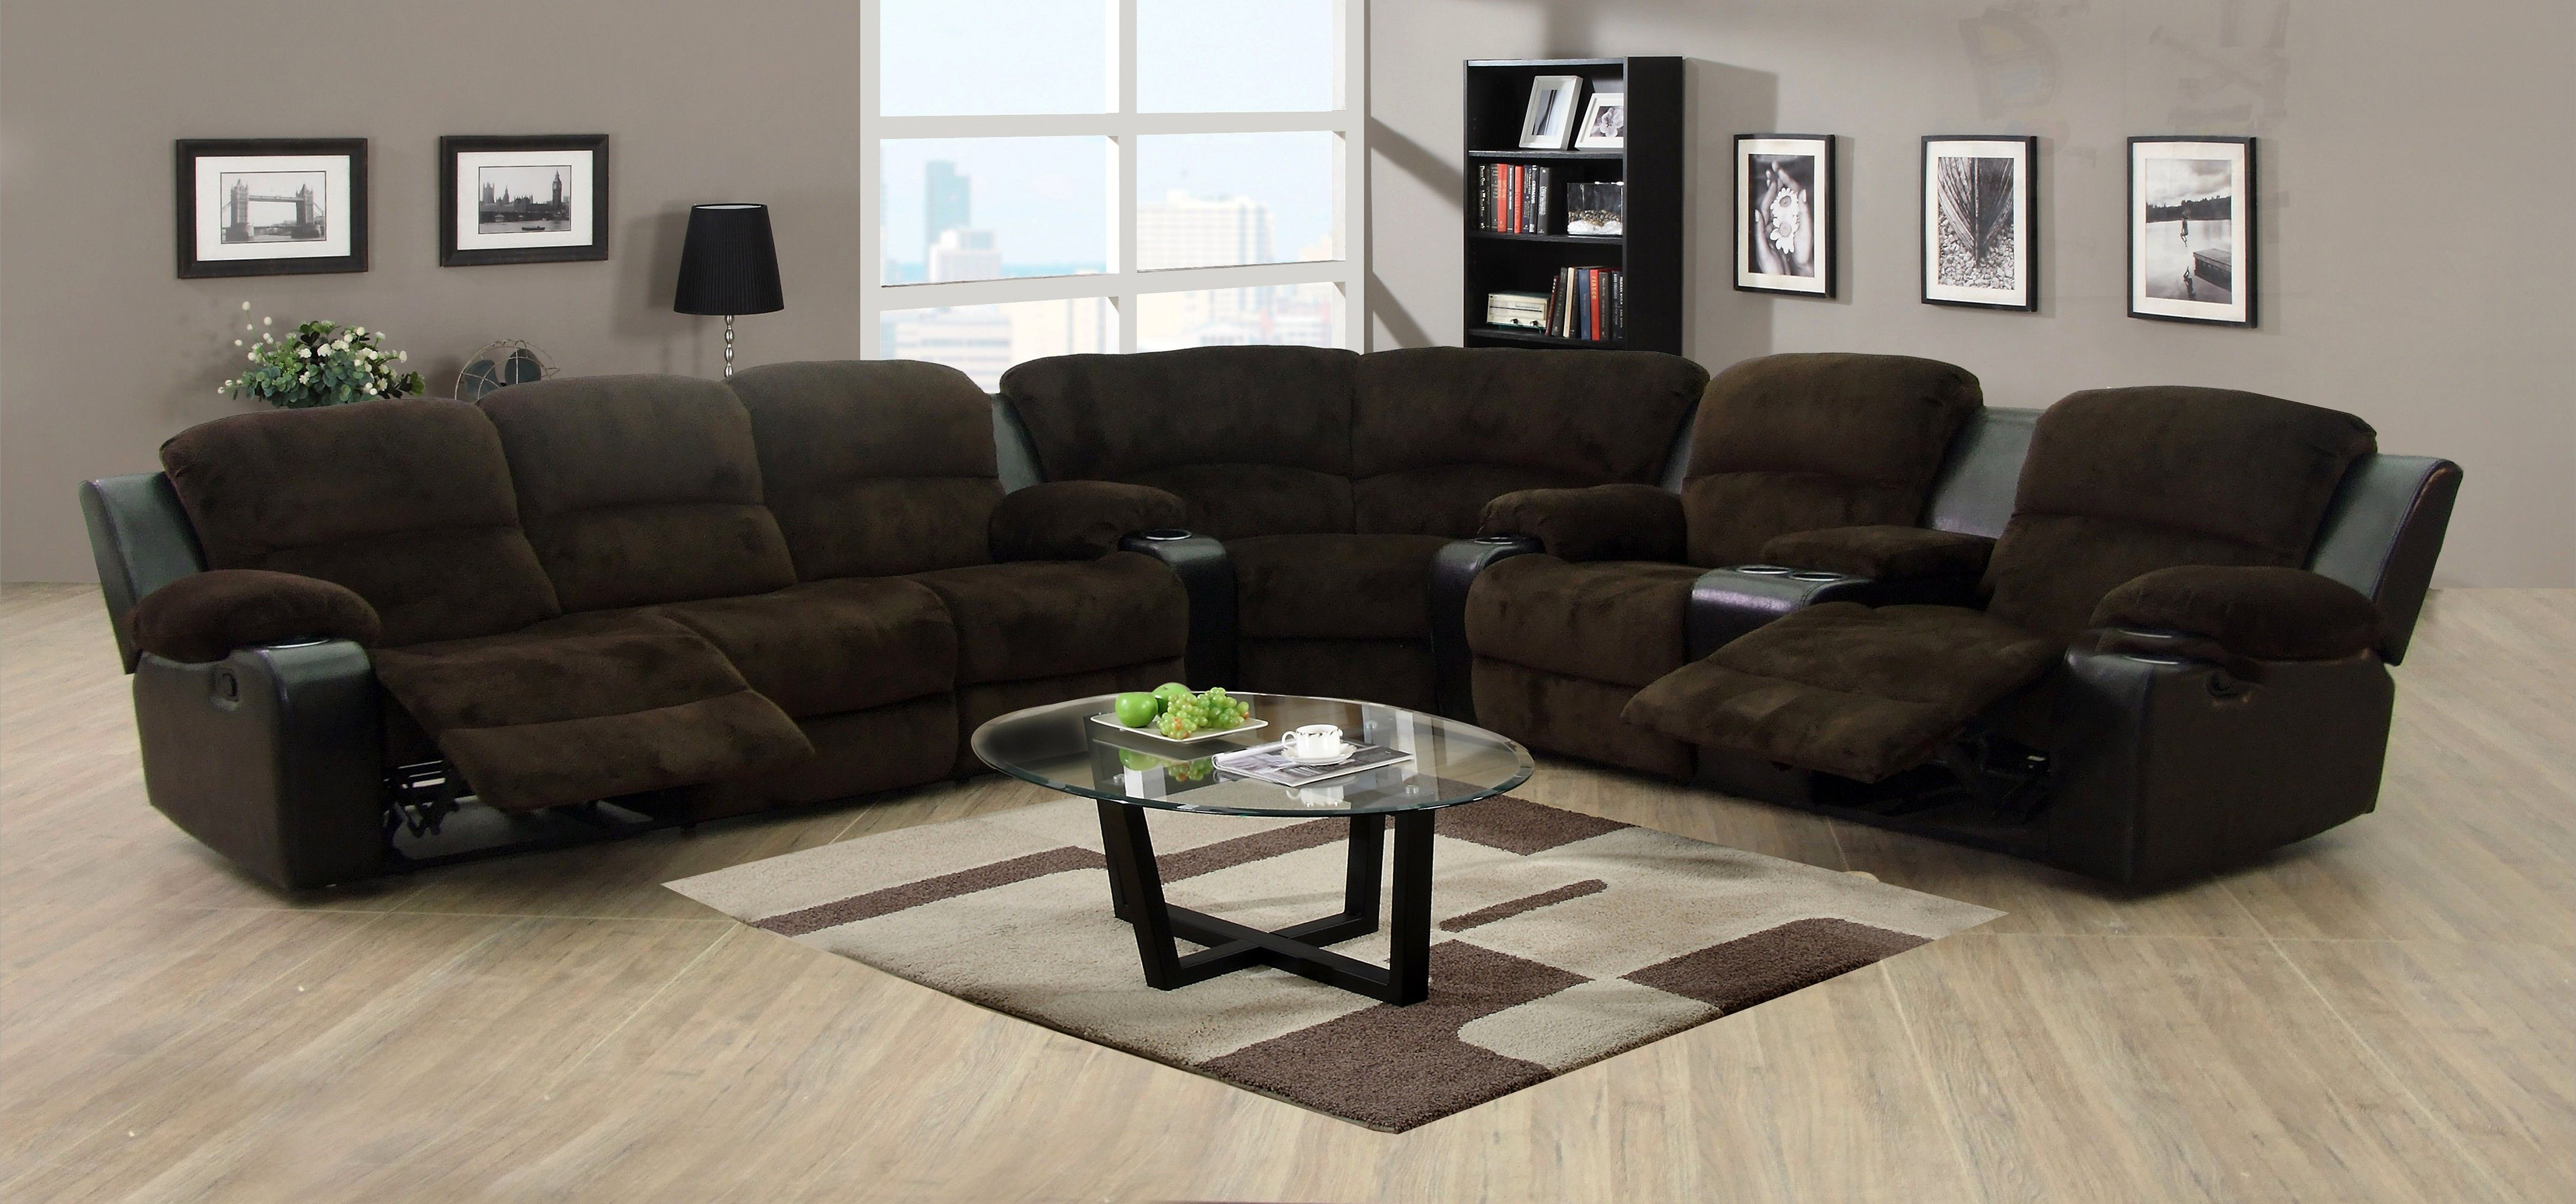 Strange Pin By Allie On Home Sectional Sofa With Recliner Sofa Ncnpc Chair Design For Home Ncnpcorg